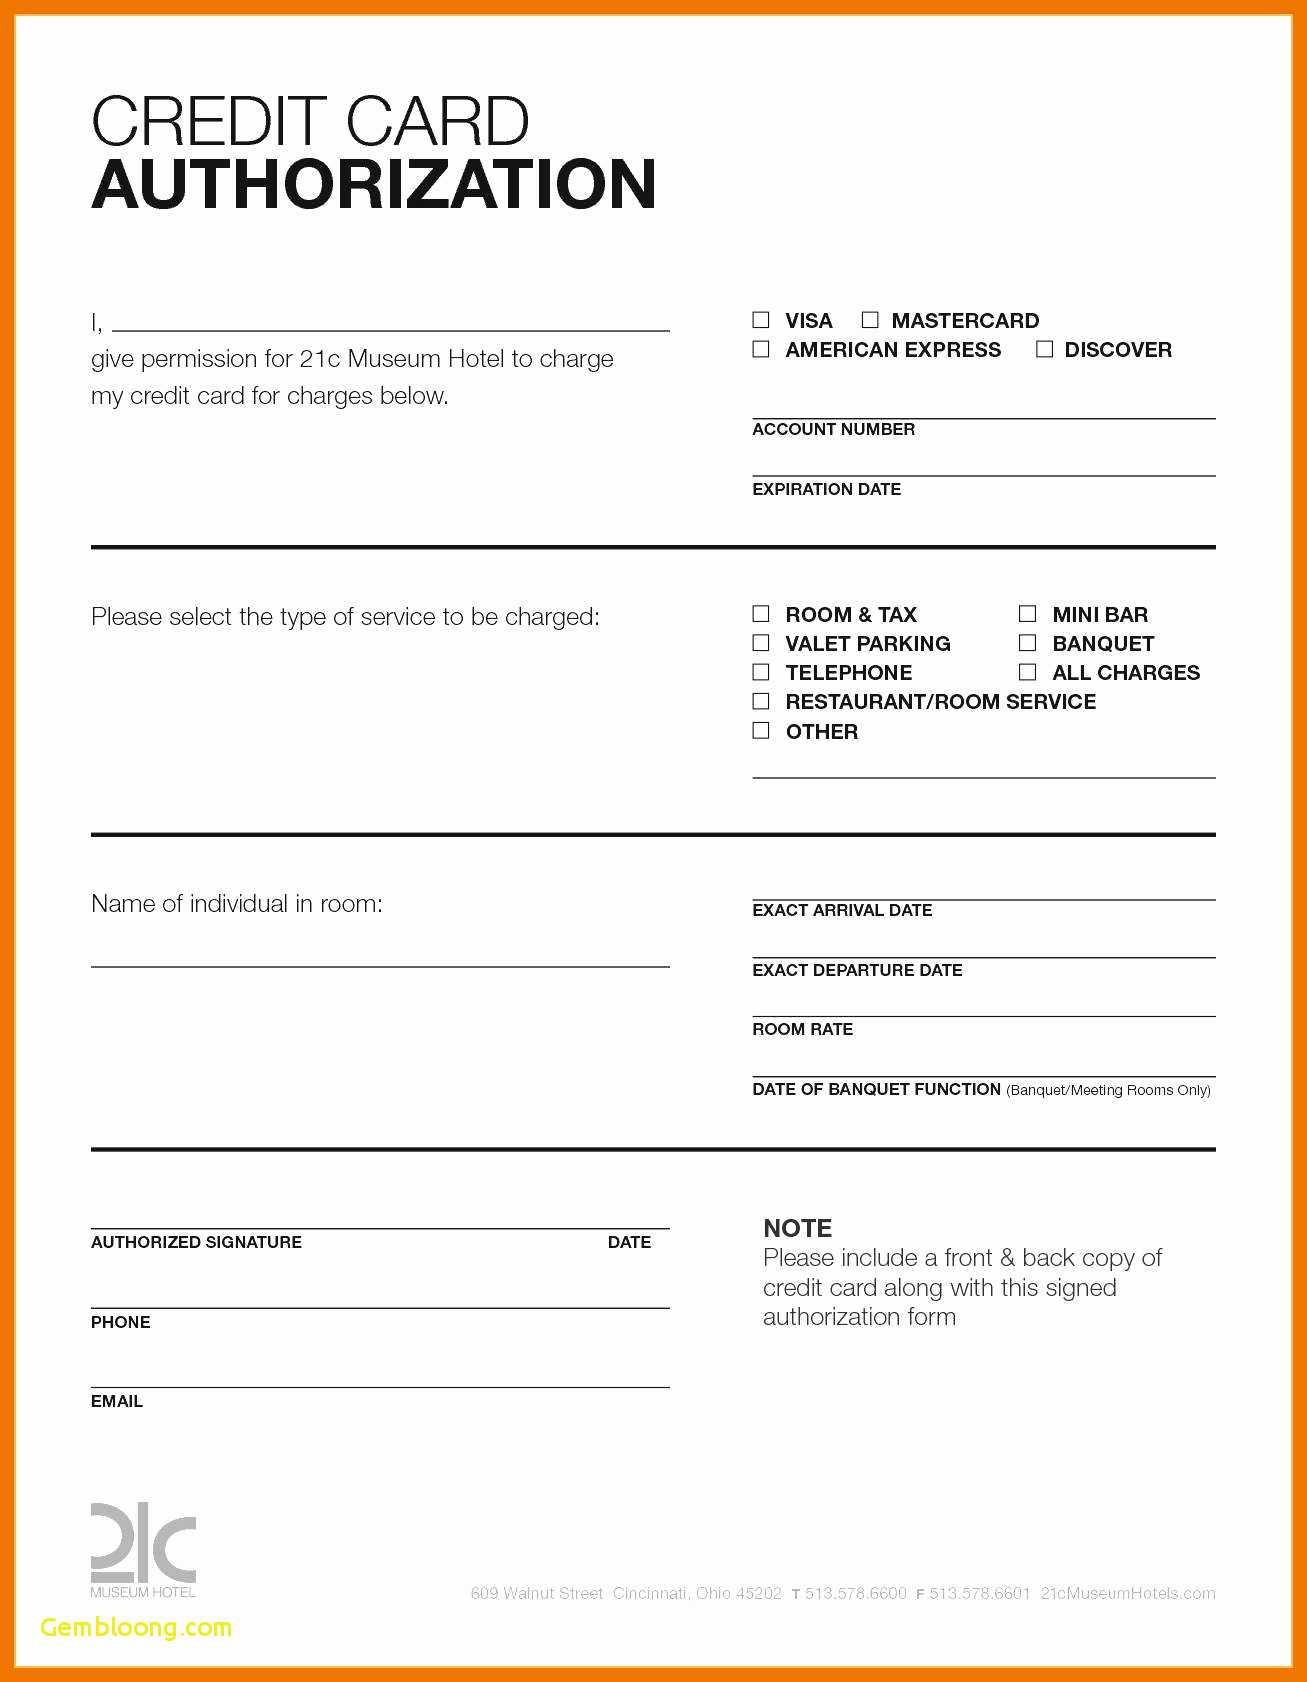 Hotel Credit Card Authorization Form Template Elegant regarding Credit Card Authorization Form Template Word